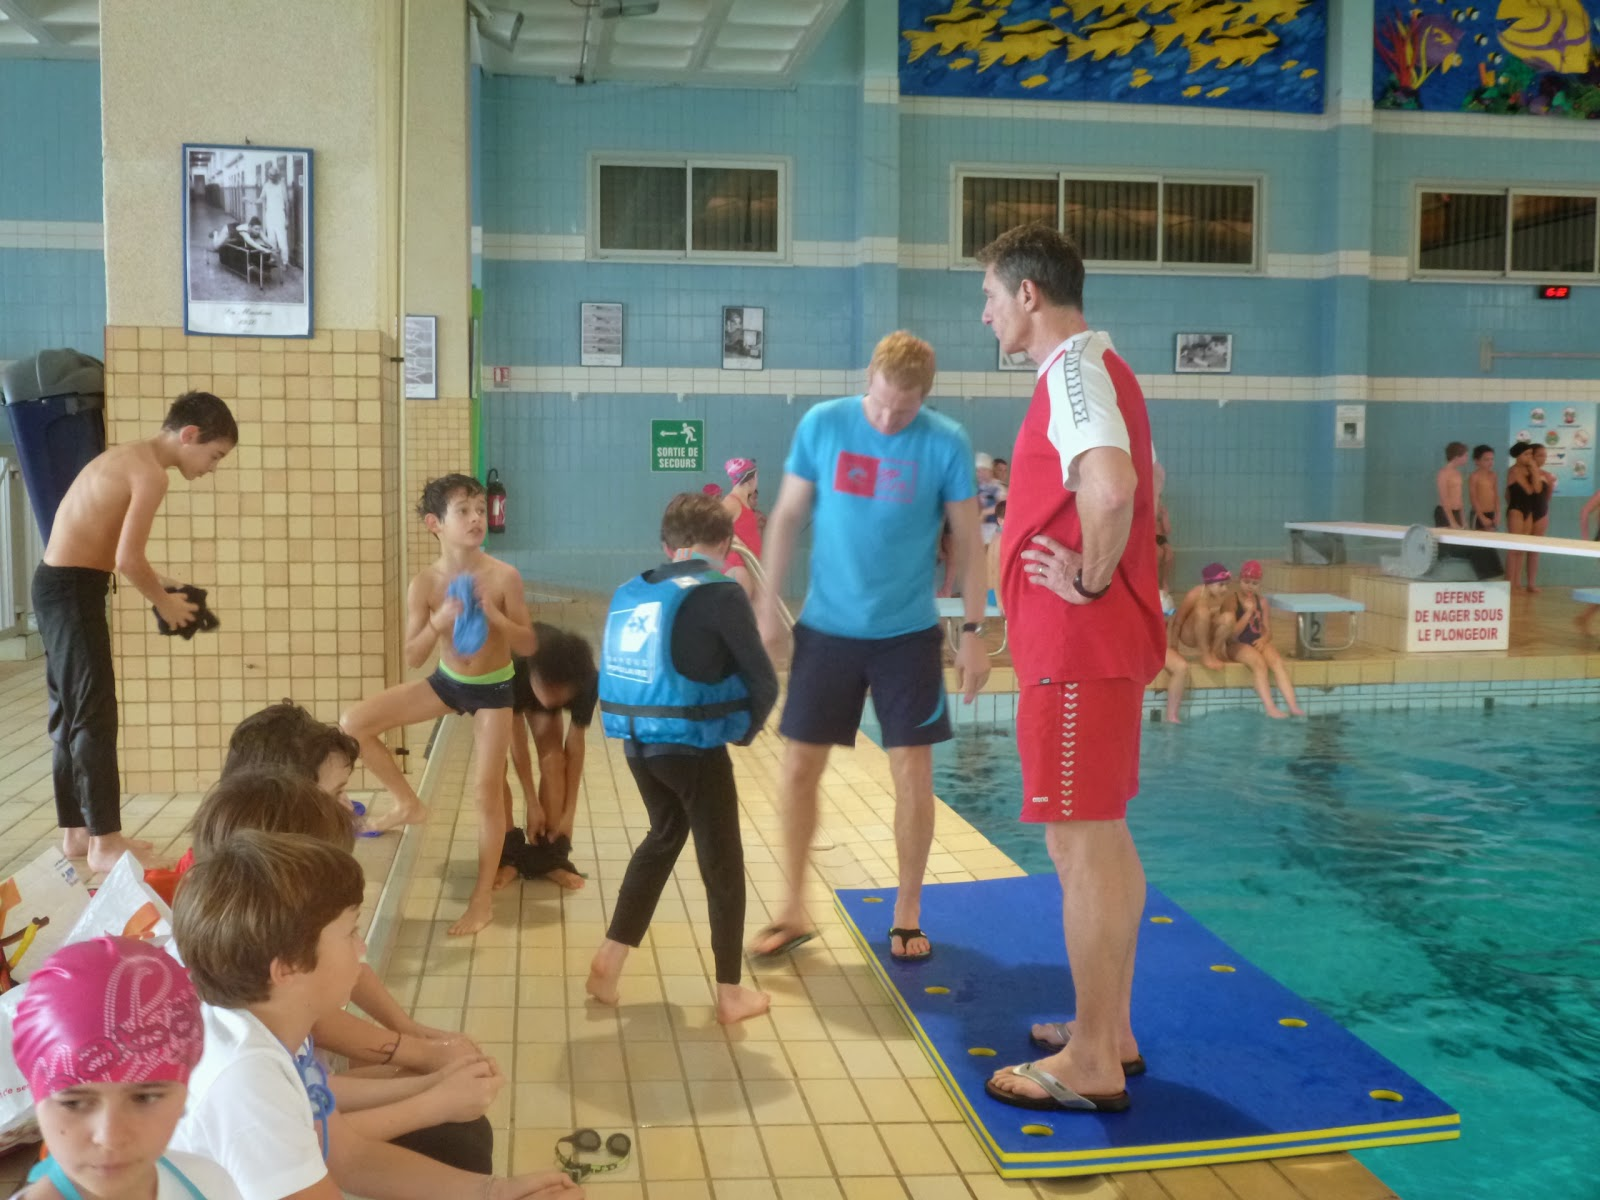 Ecole sainte anne st briac sur mer tests la piscine for Test de piscine